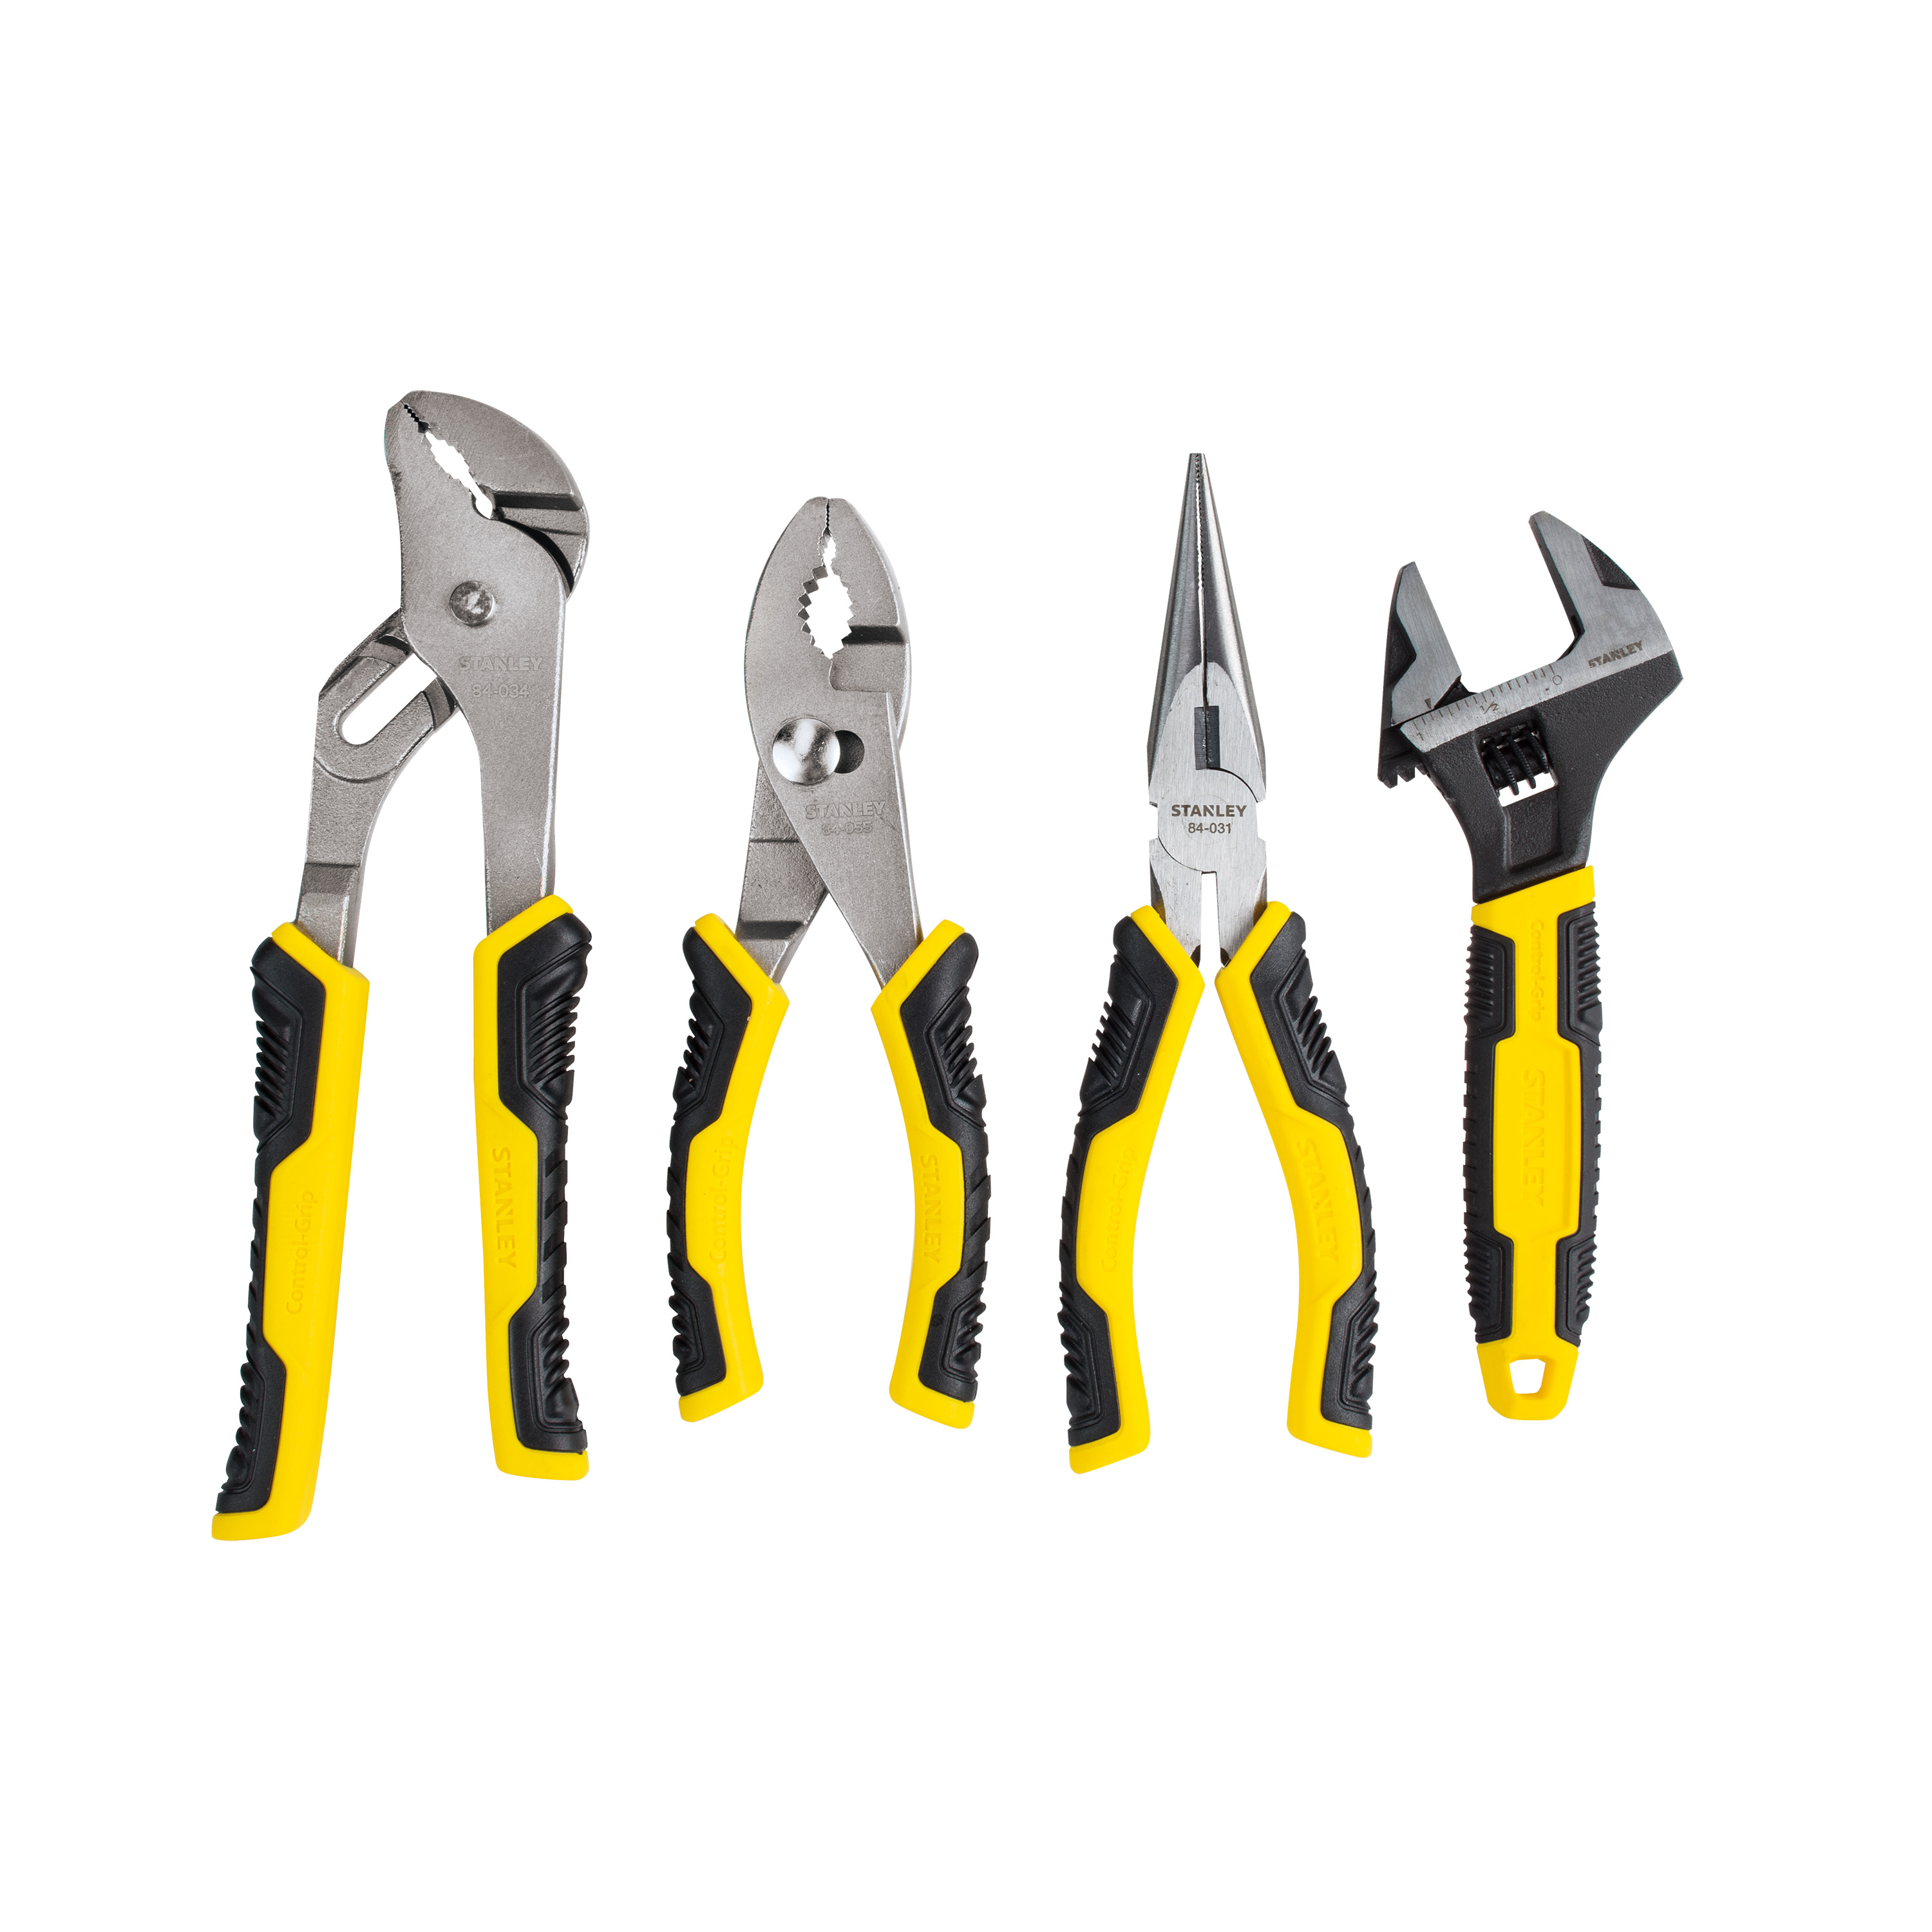 STANLEY�� 84-558 4-Piece Plier and Adjustable Wrench Set